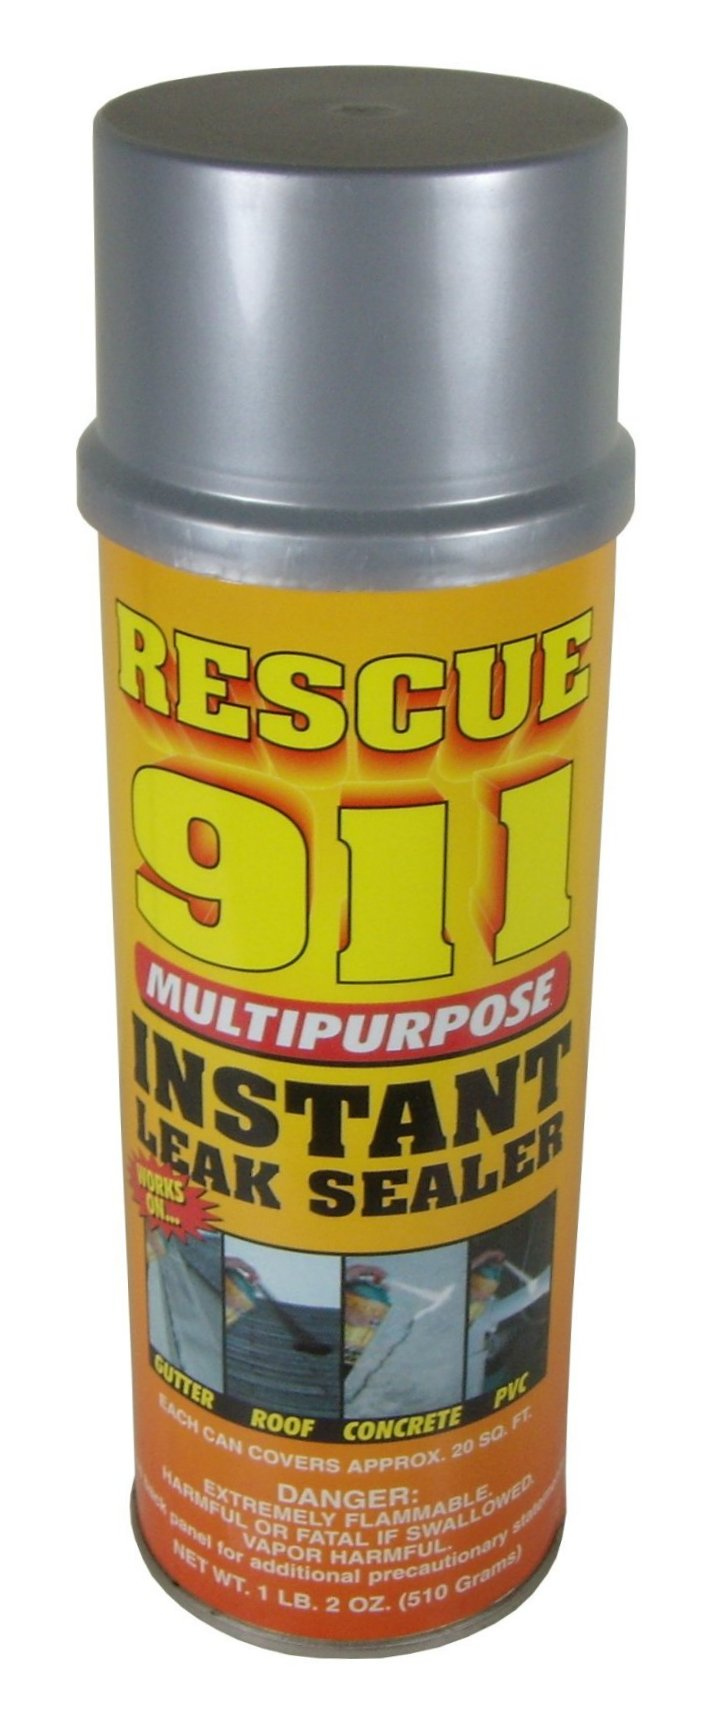 Just Spray To Instantly Seal Leaks All Over Your Home